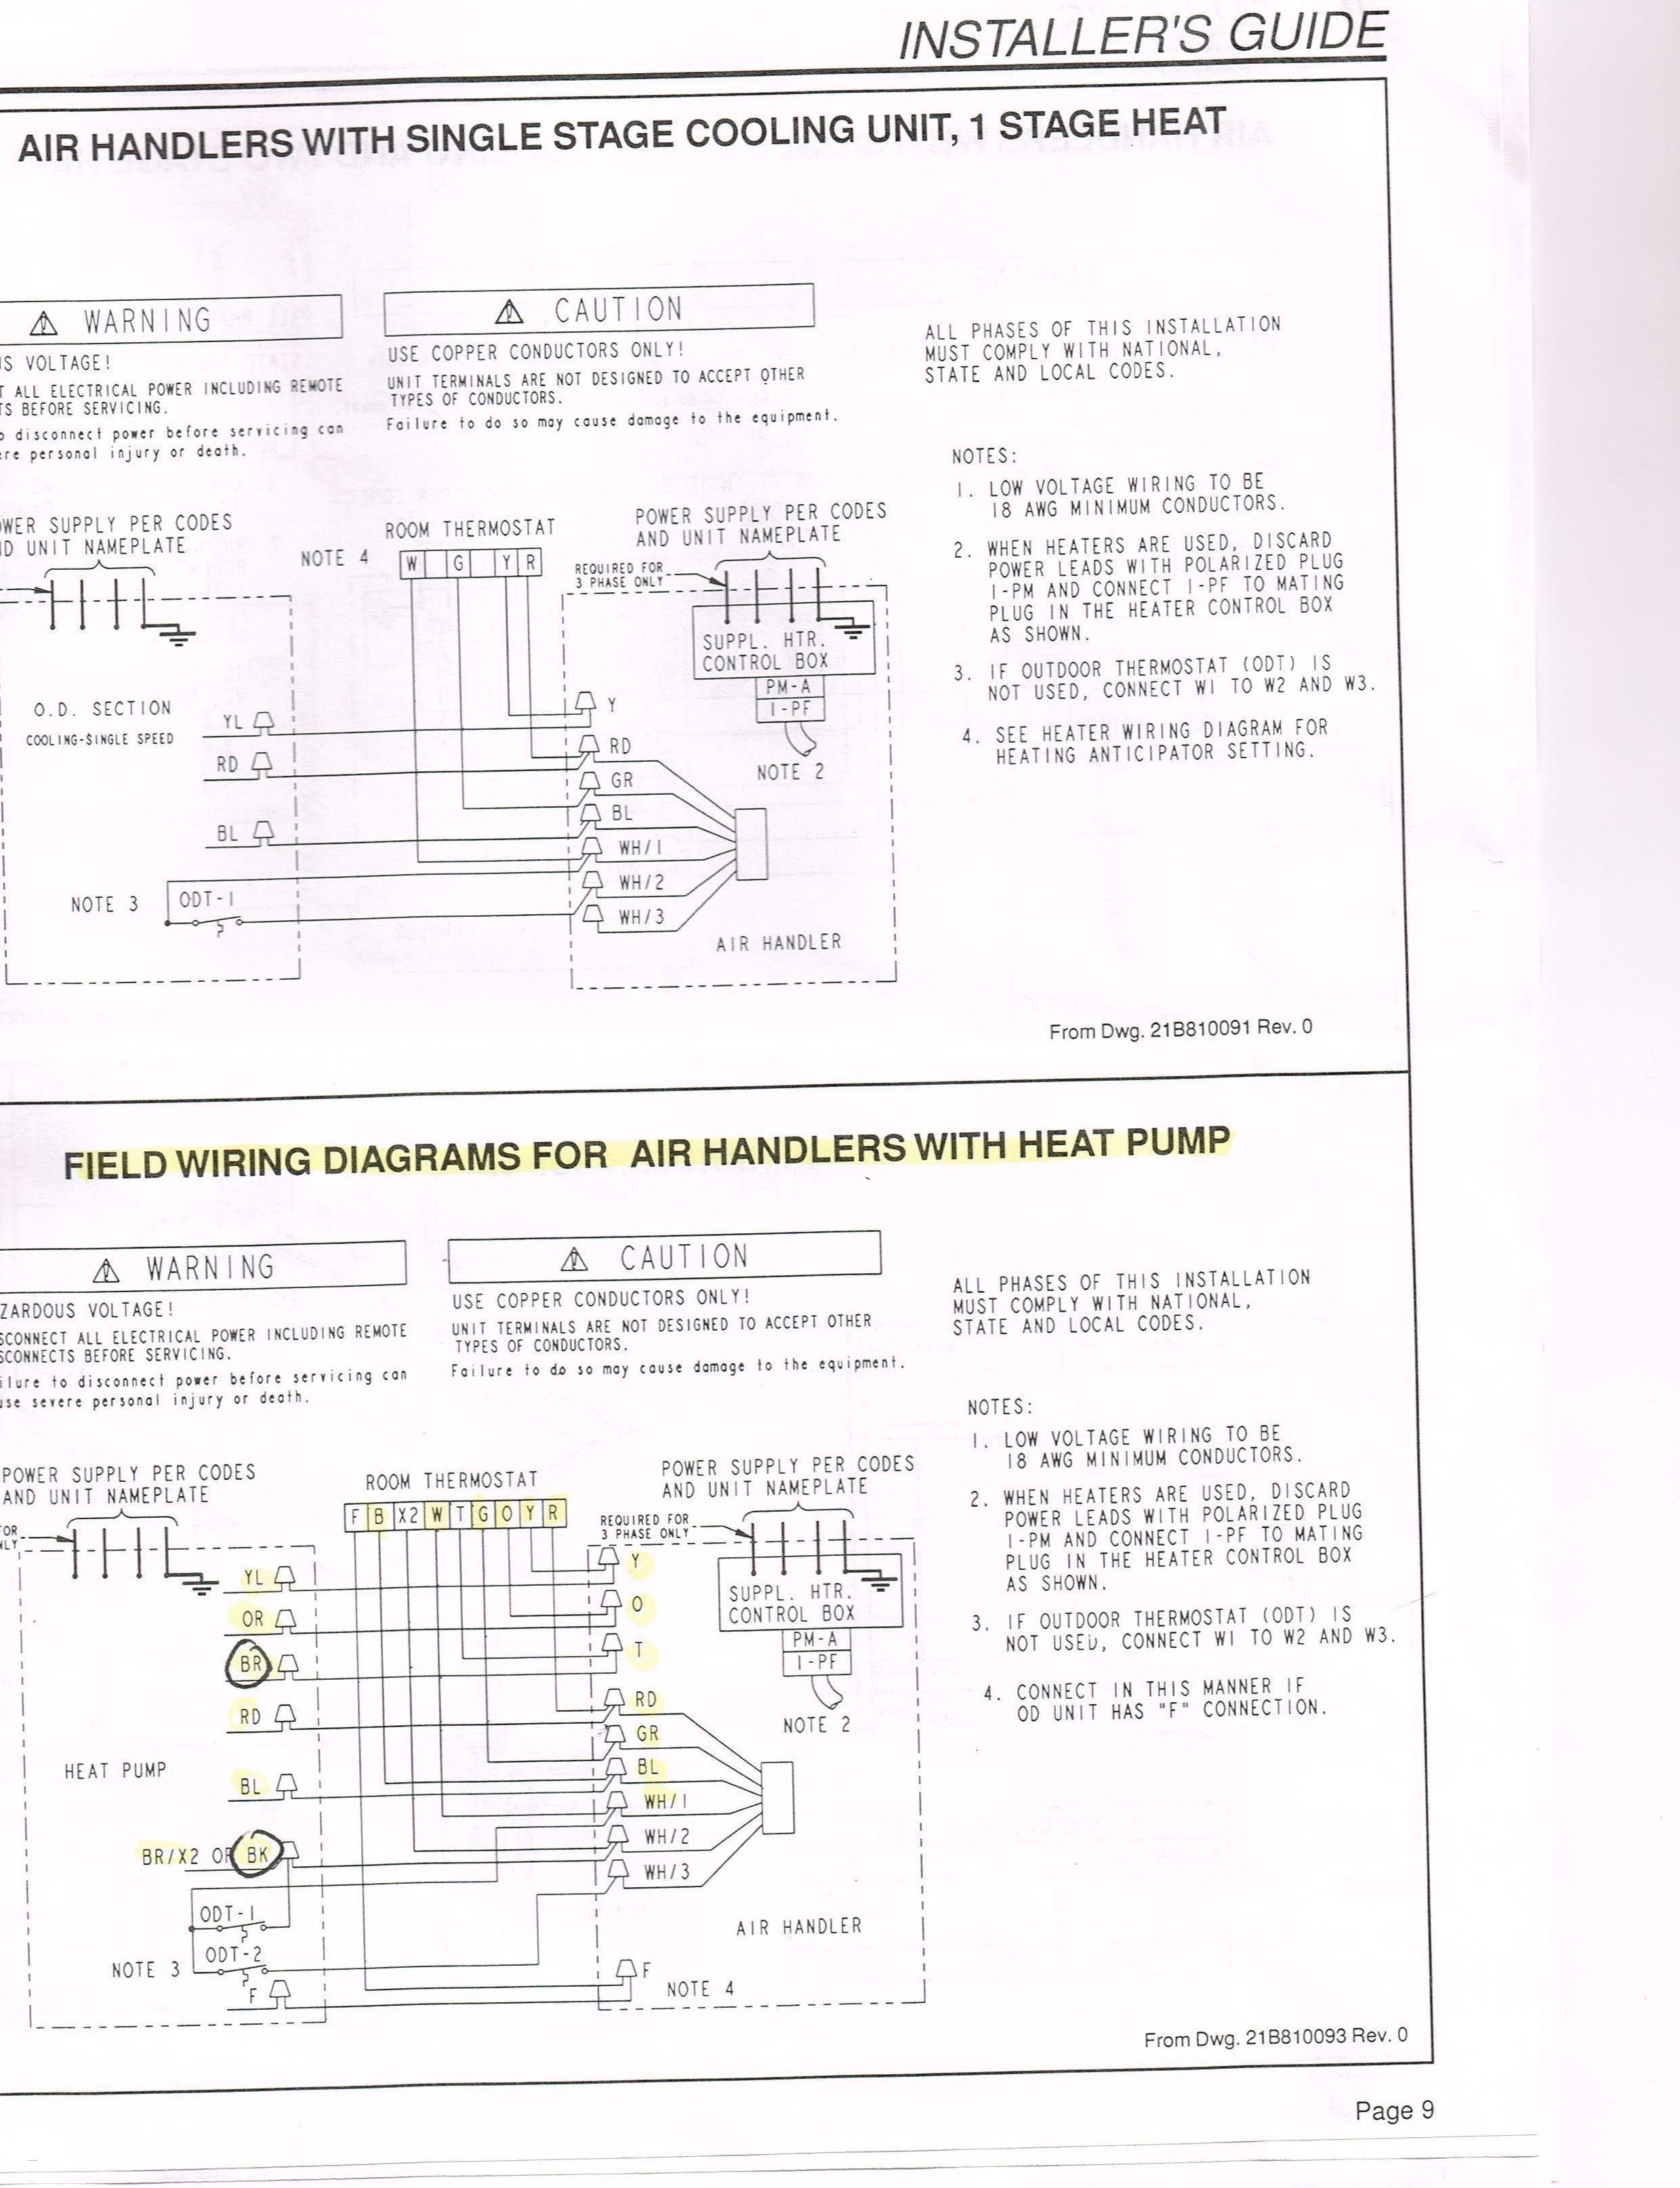 Ztvhl3 Wiring Diagram Simple Guide About 2004 Pontiac Gto Fuel System Schematic Gentex 177 Reinvent Your U2022 Rh Kismetcars Co Uk